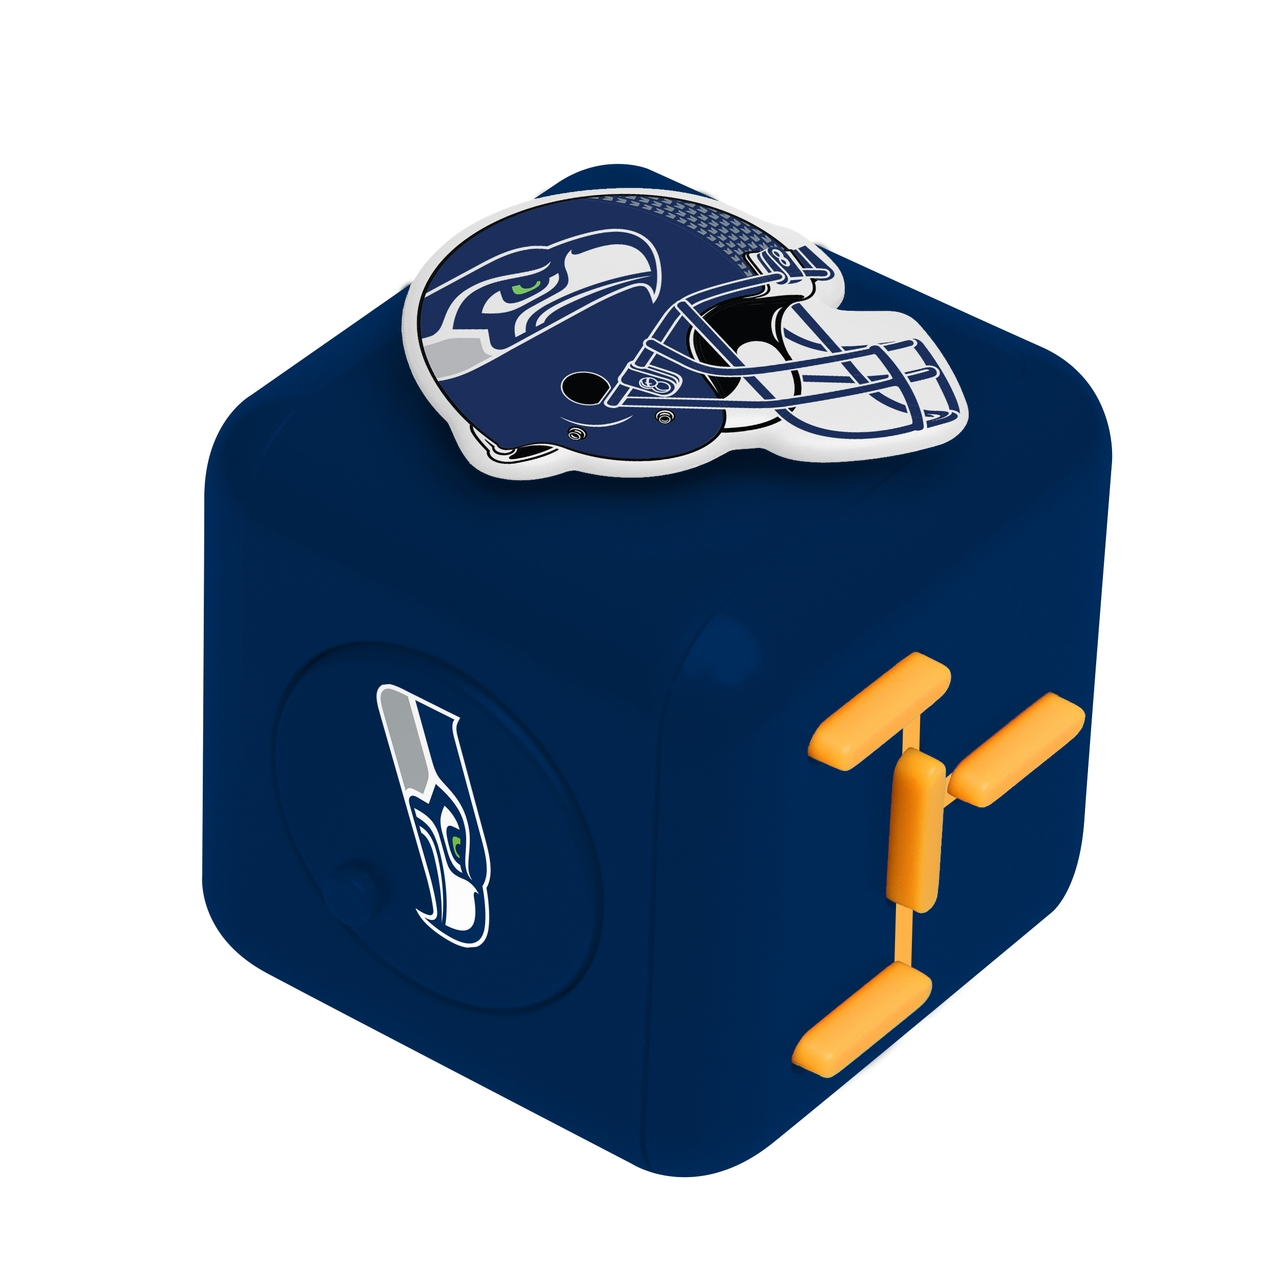 Seattle Seahawks Cubez Diztracto - 9141850953 - Nfl Football Seattle Seahawks Toys Games Puzzles Games 9141850953